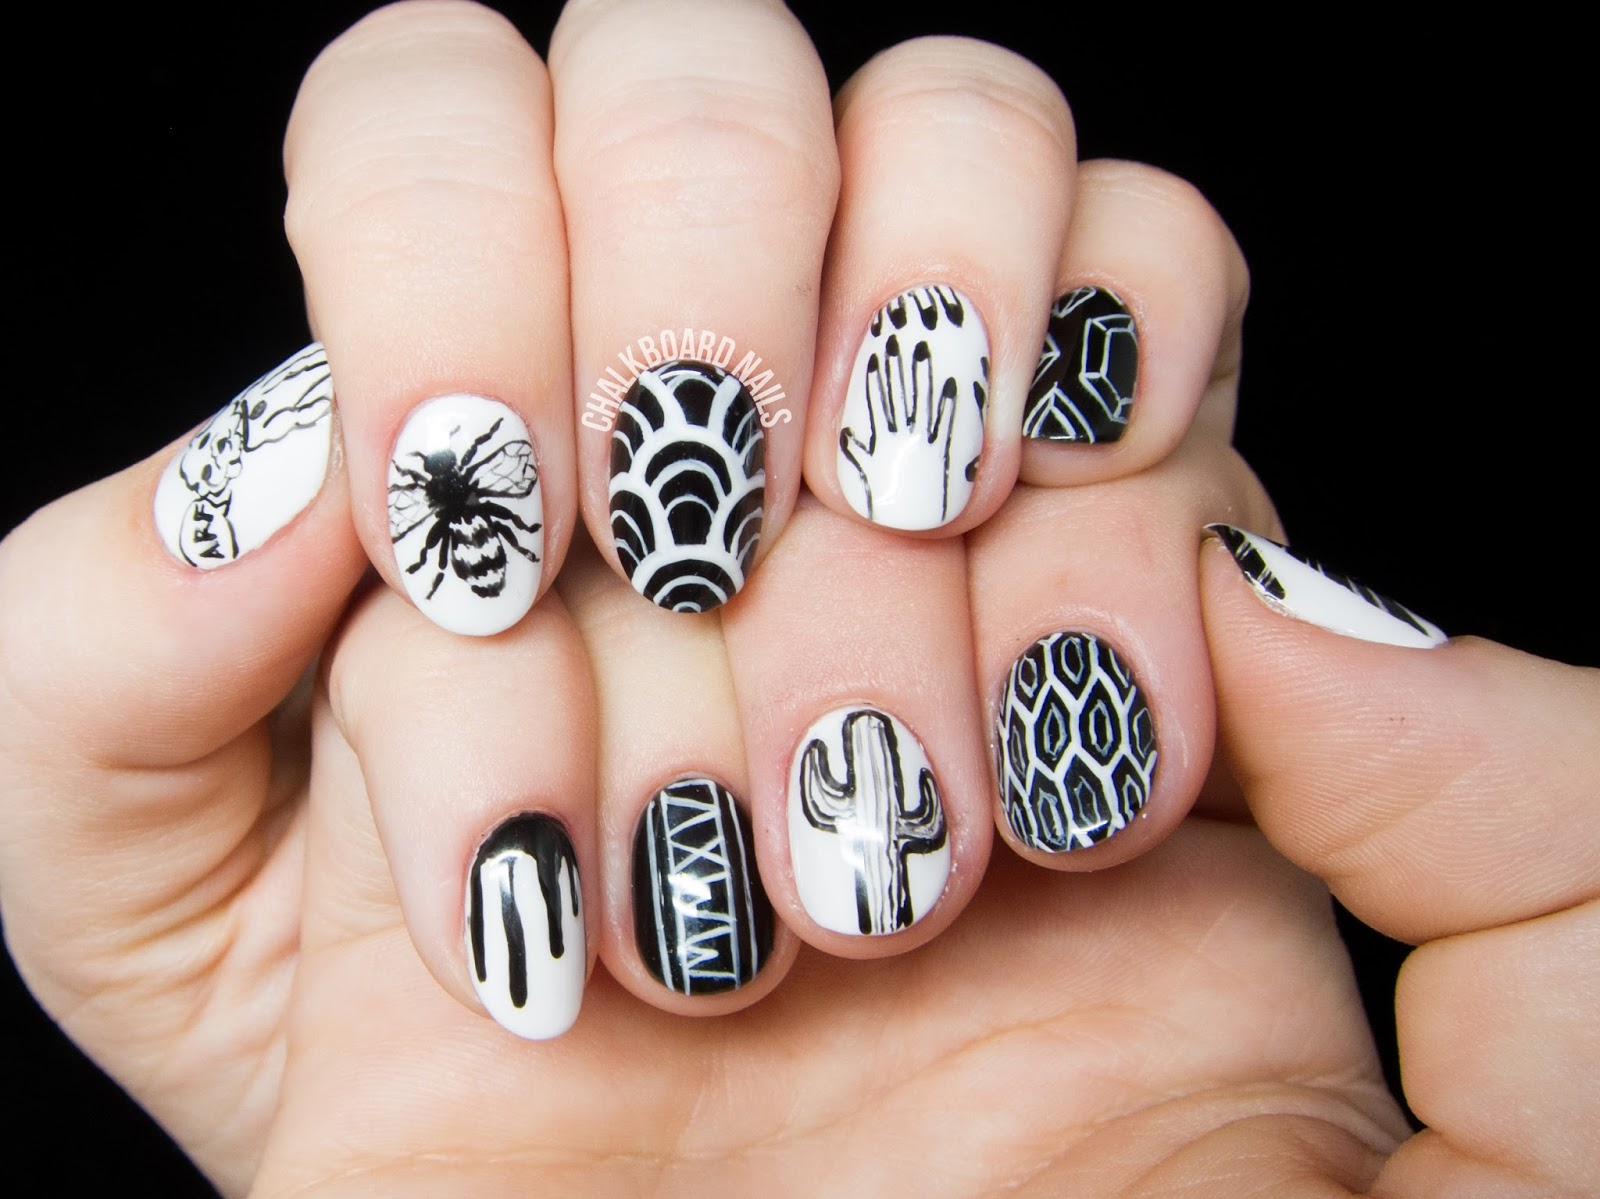 Personalized Black and White Freehand Nail Art ...